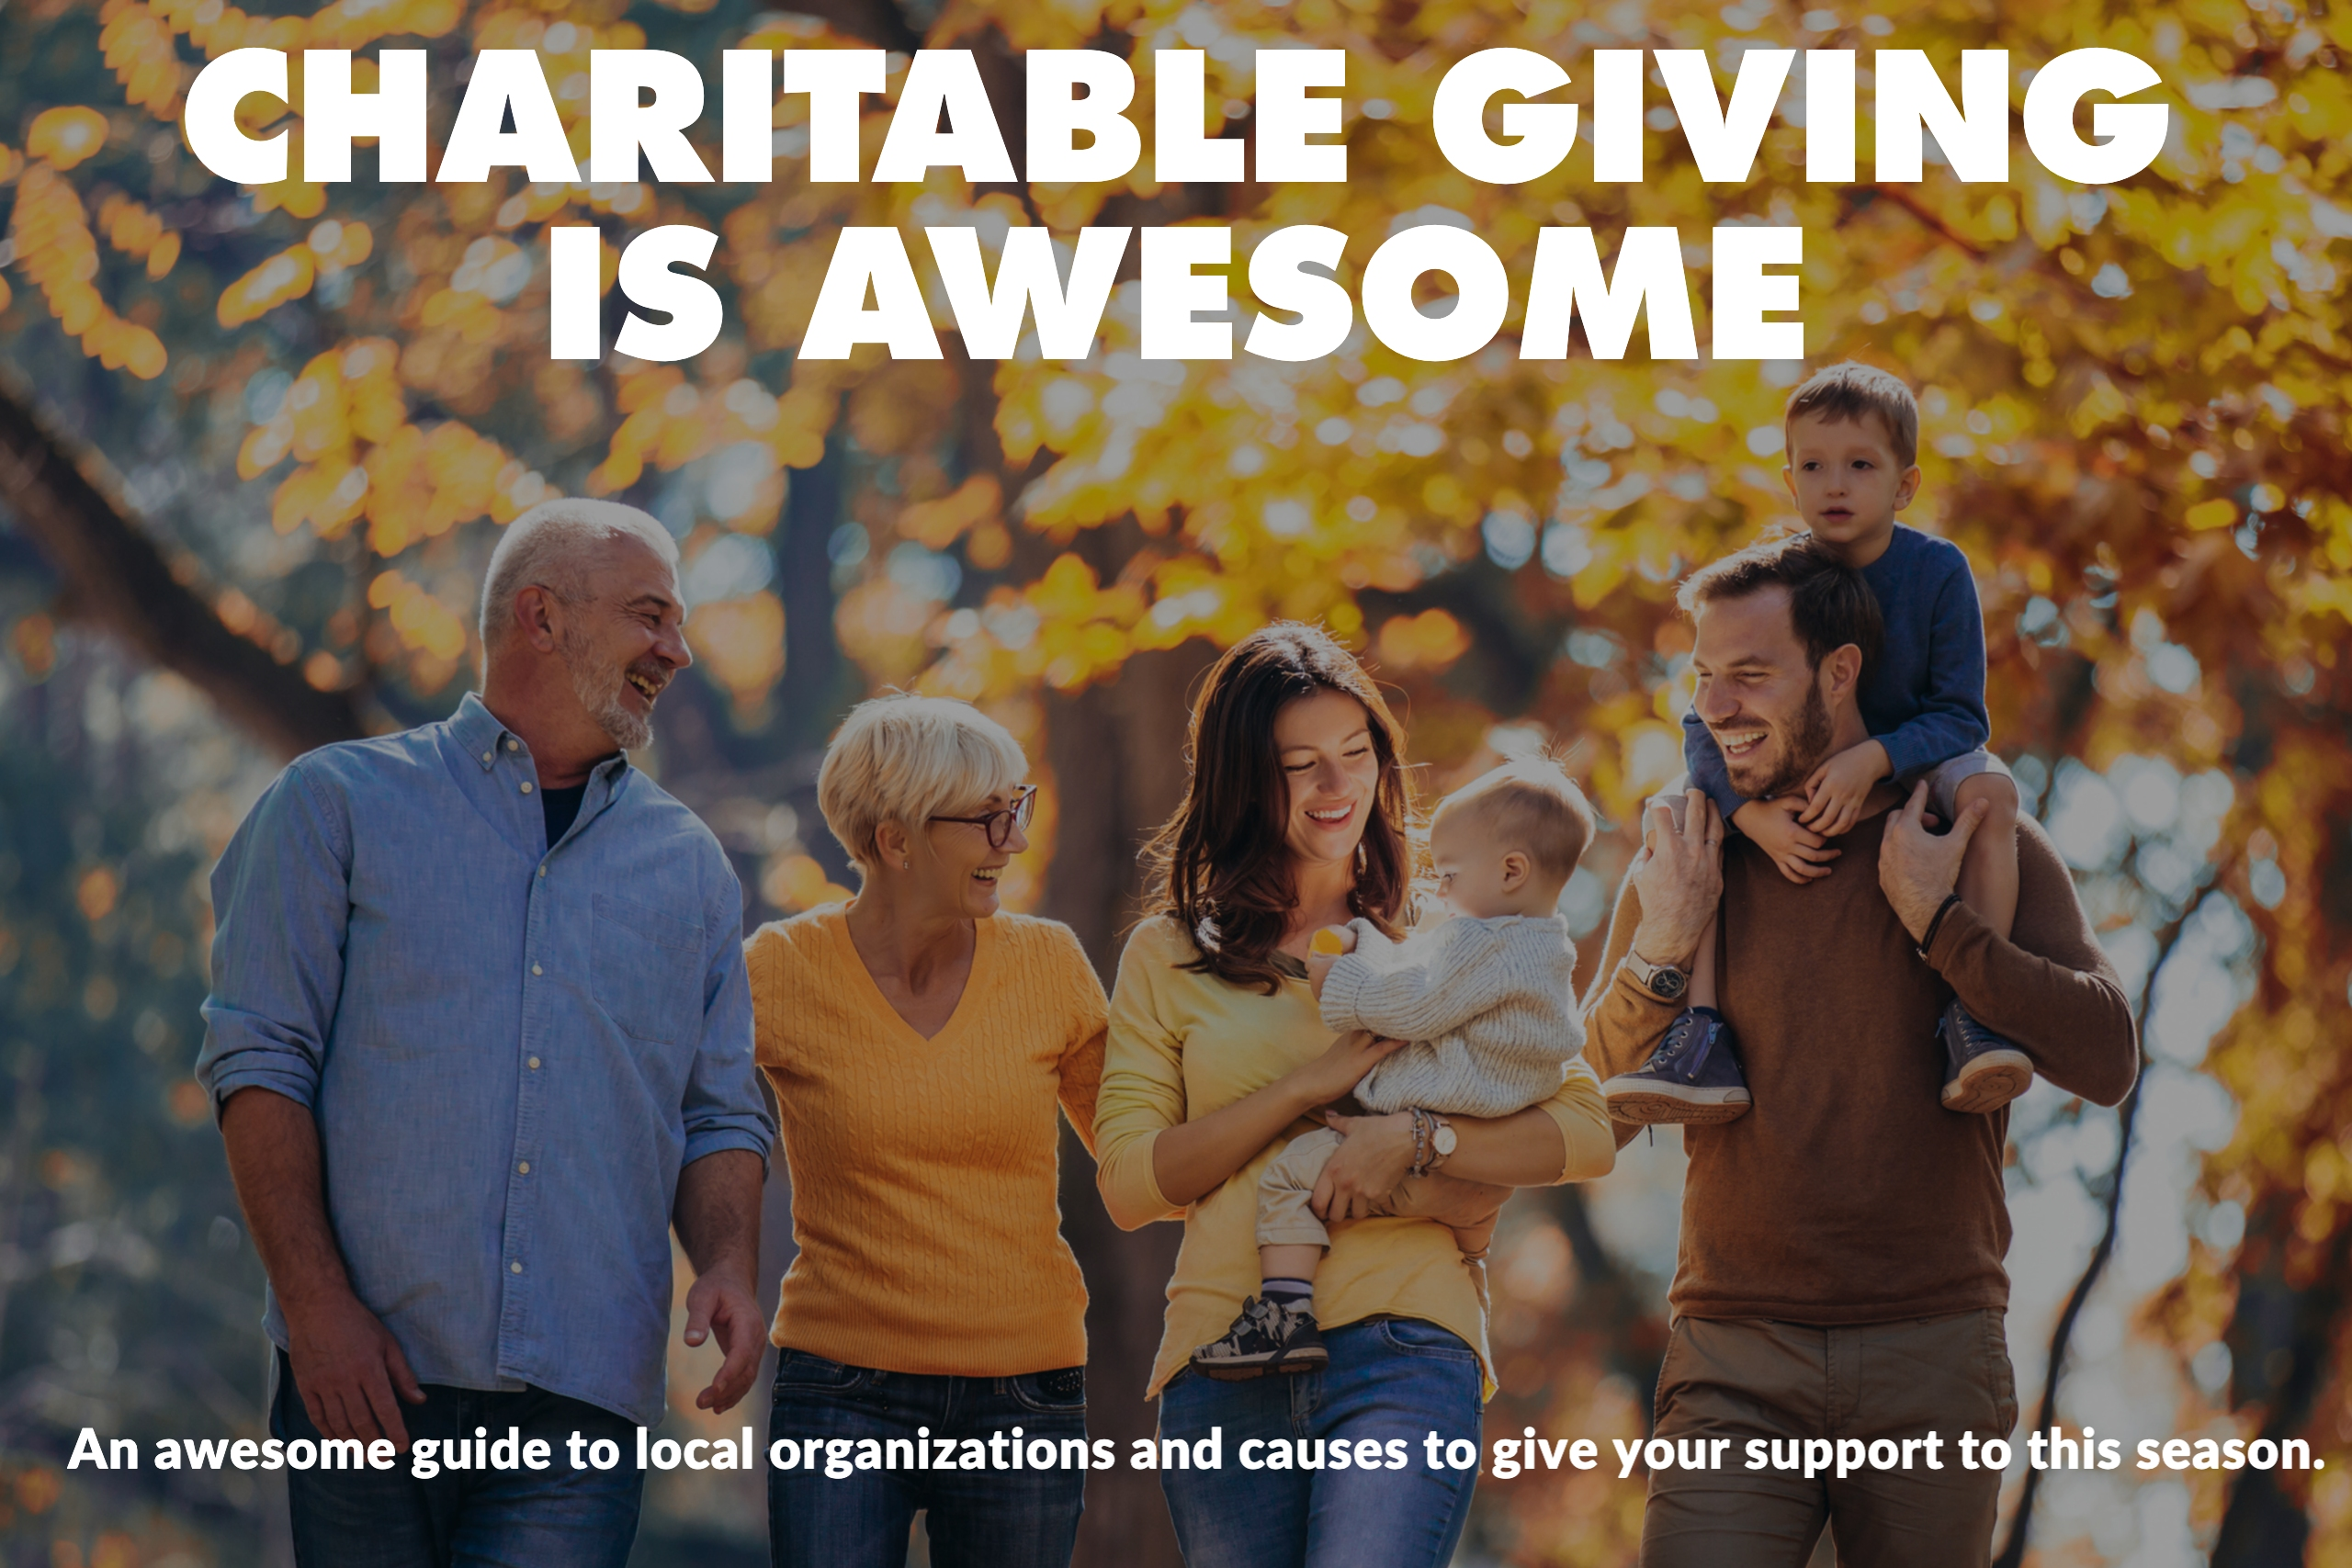 GIVING IS AWESOME